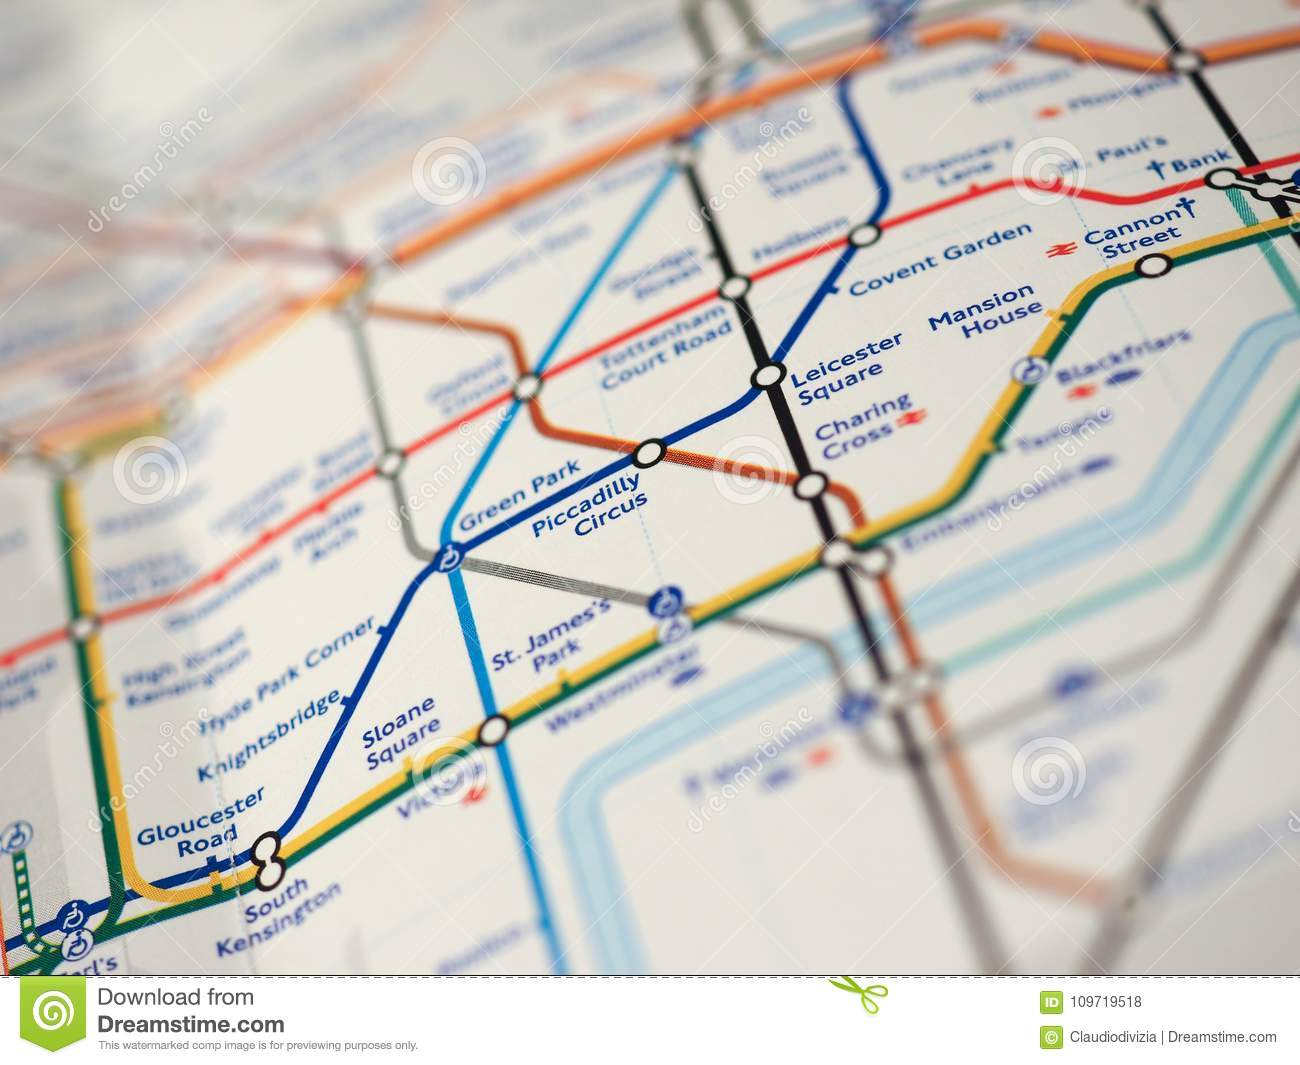 Street Map Of London With Tube Stations.Map Of London Underground Editorial Stock Photo Image Of Oxford